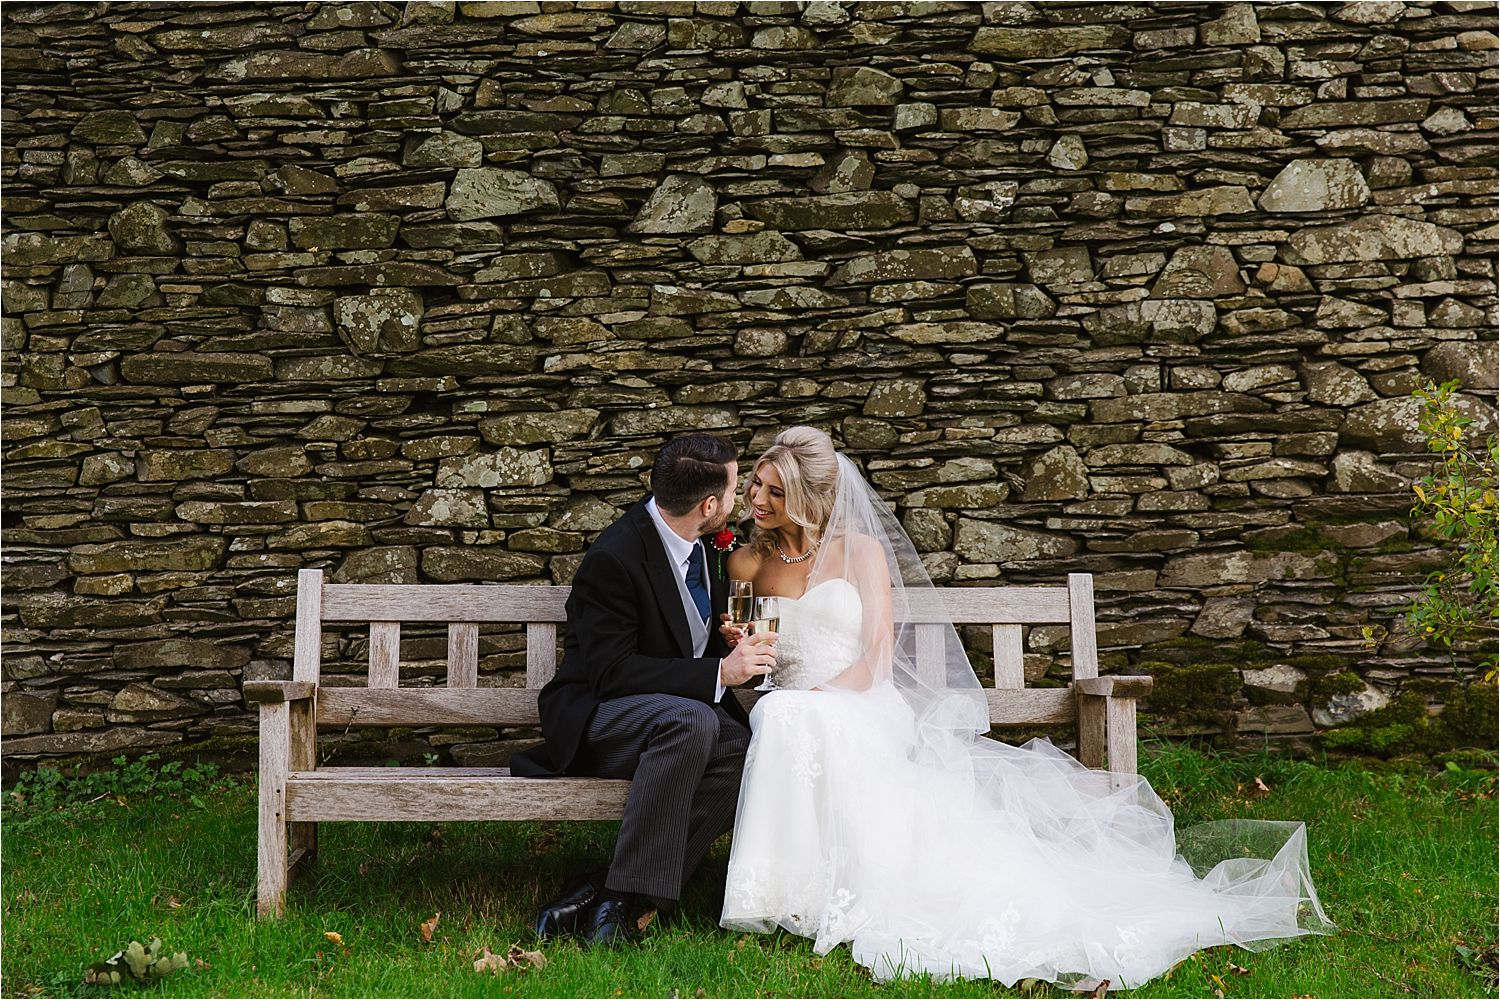 A quiet moment on a bench together to enjoy a glass of champagne before the reception starts at Lake District wedding venue, Belmount Hall